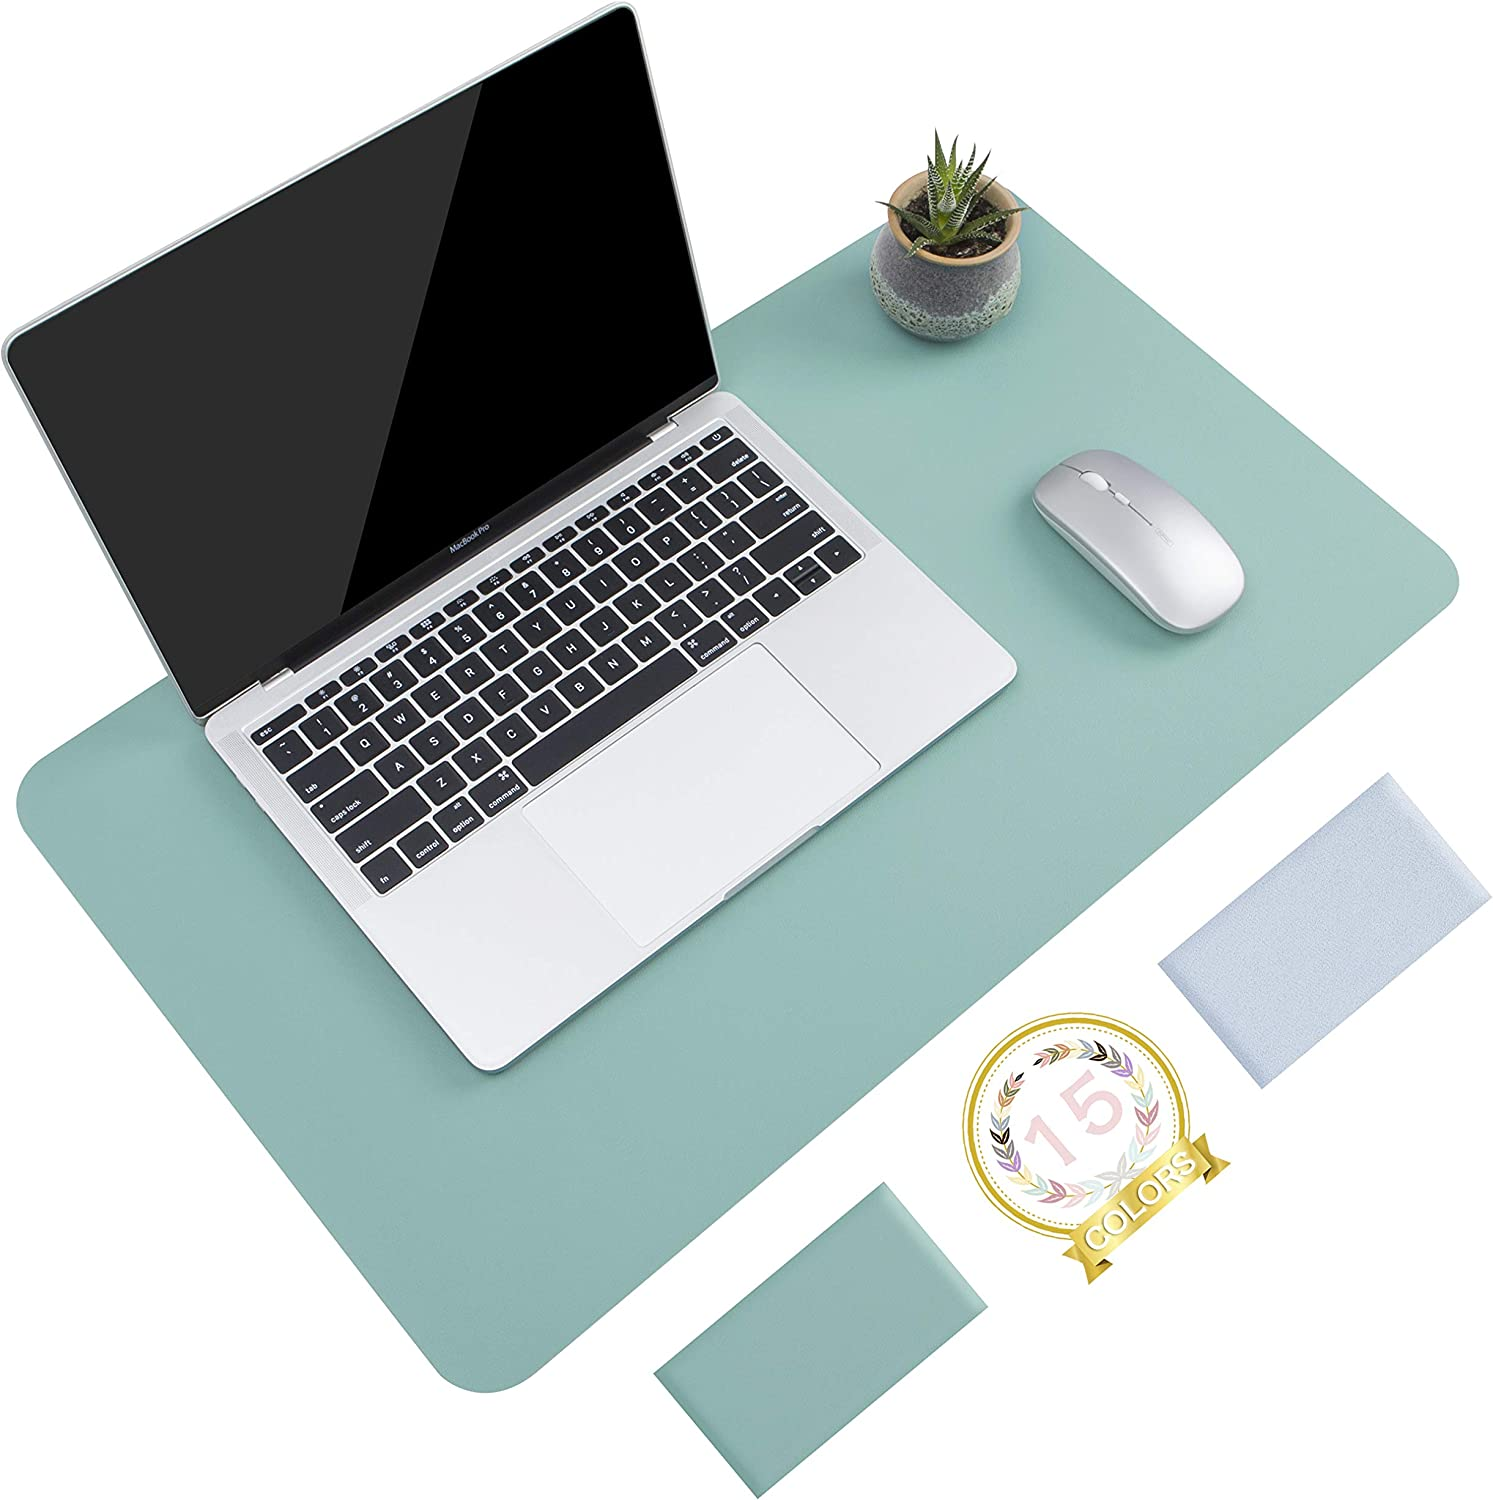 """Non-Slip Desk Pad, Waterproof PVC Leather Desk Table Protector, Ultra Thin Large Mouse Pad, Easy Clean Laptop Desk Writing Mat for Office Work/Home/Decor (Green Blue, 23.6"""" x 13.7"""")"""